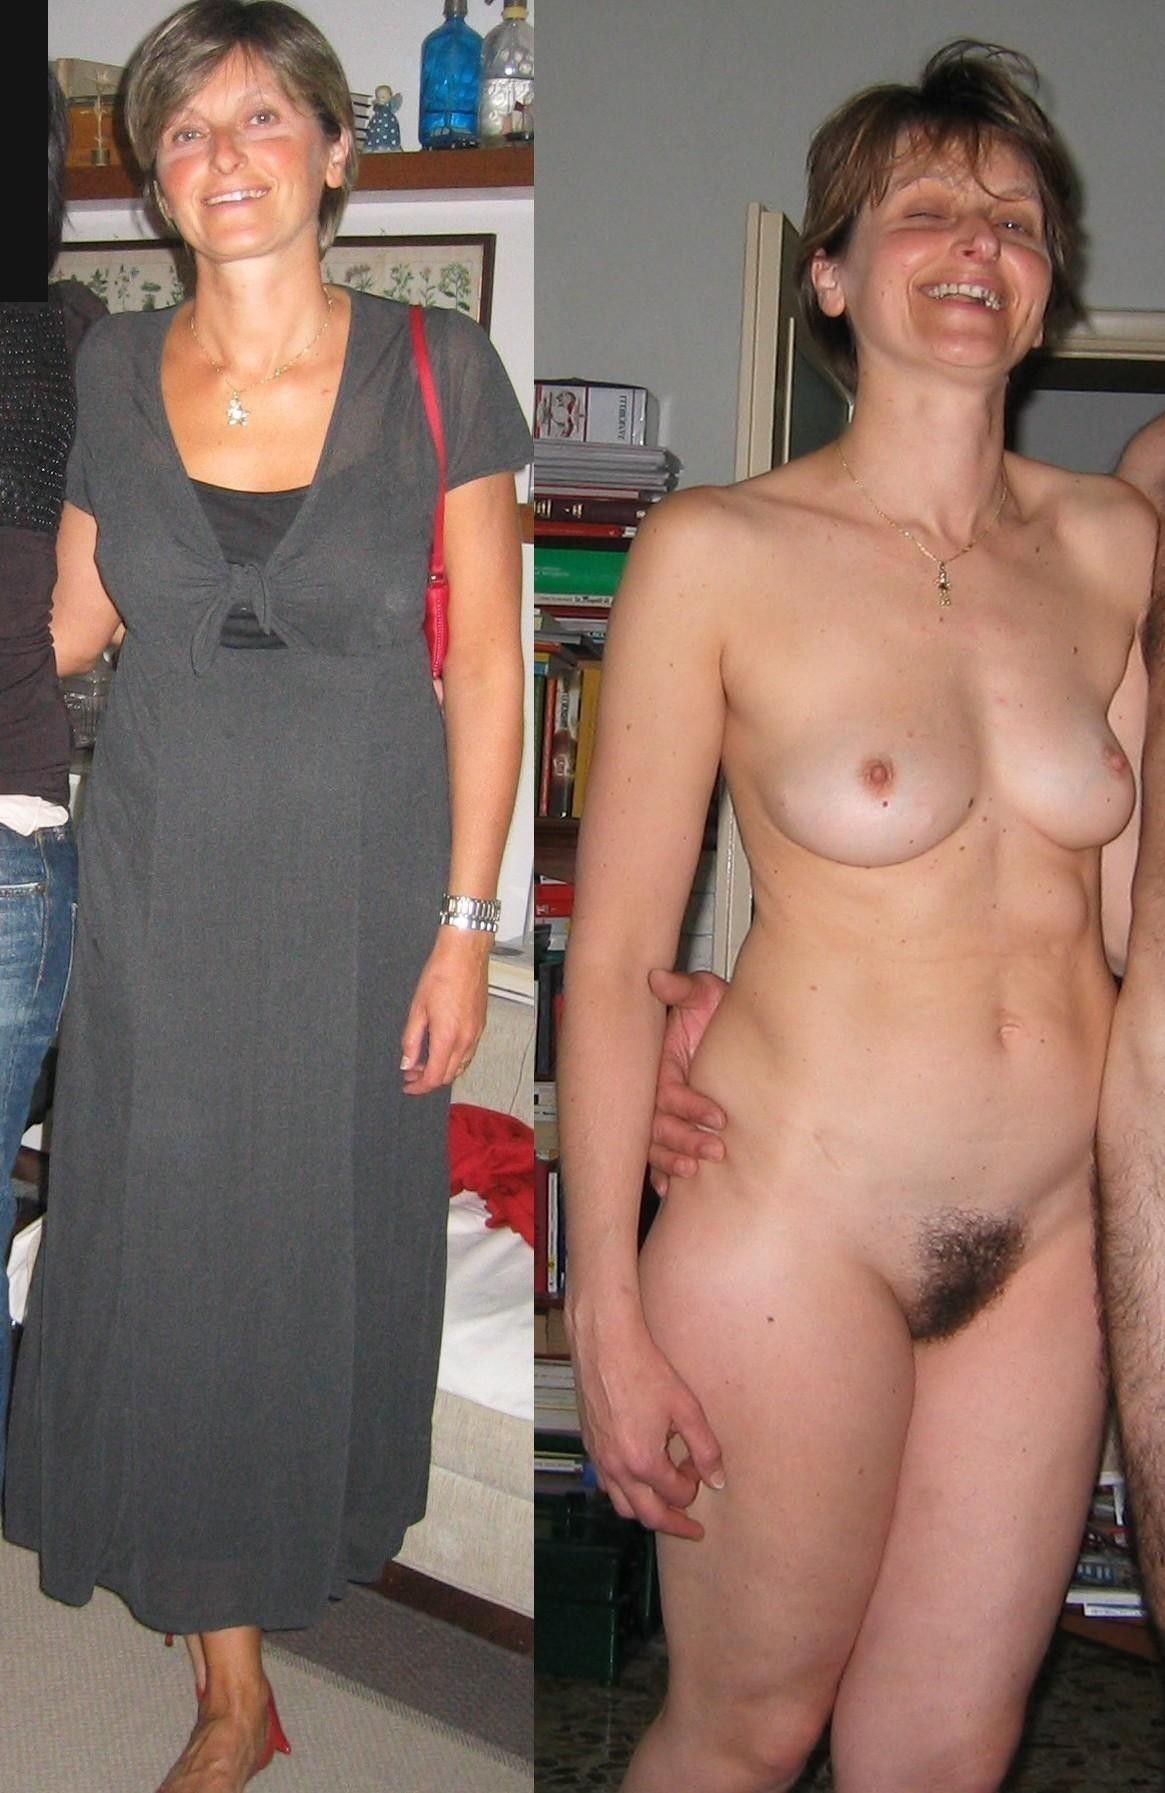 Undressing Hairy Nude